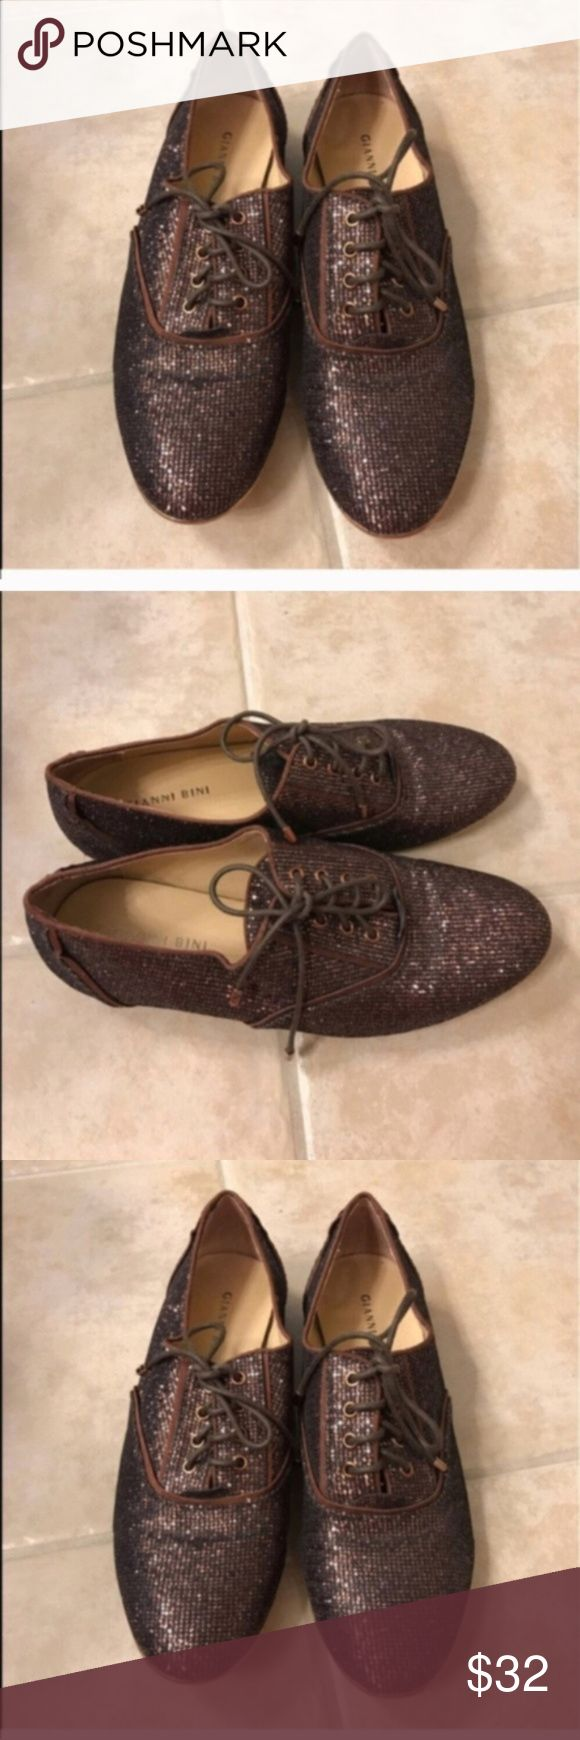 Gianni Bini brown shimmer Oxford shoes size 8 Gianni Bini brown shimmer Oxford shoes size 8 Gianni Bini Shoes Flats & Loafers